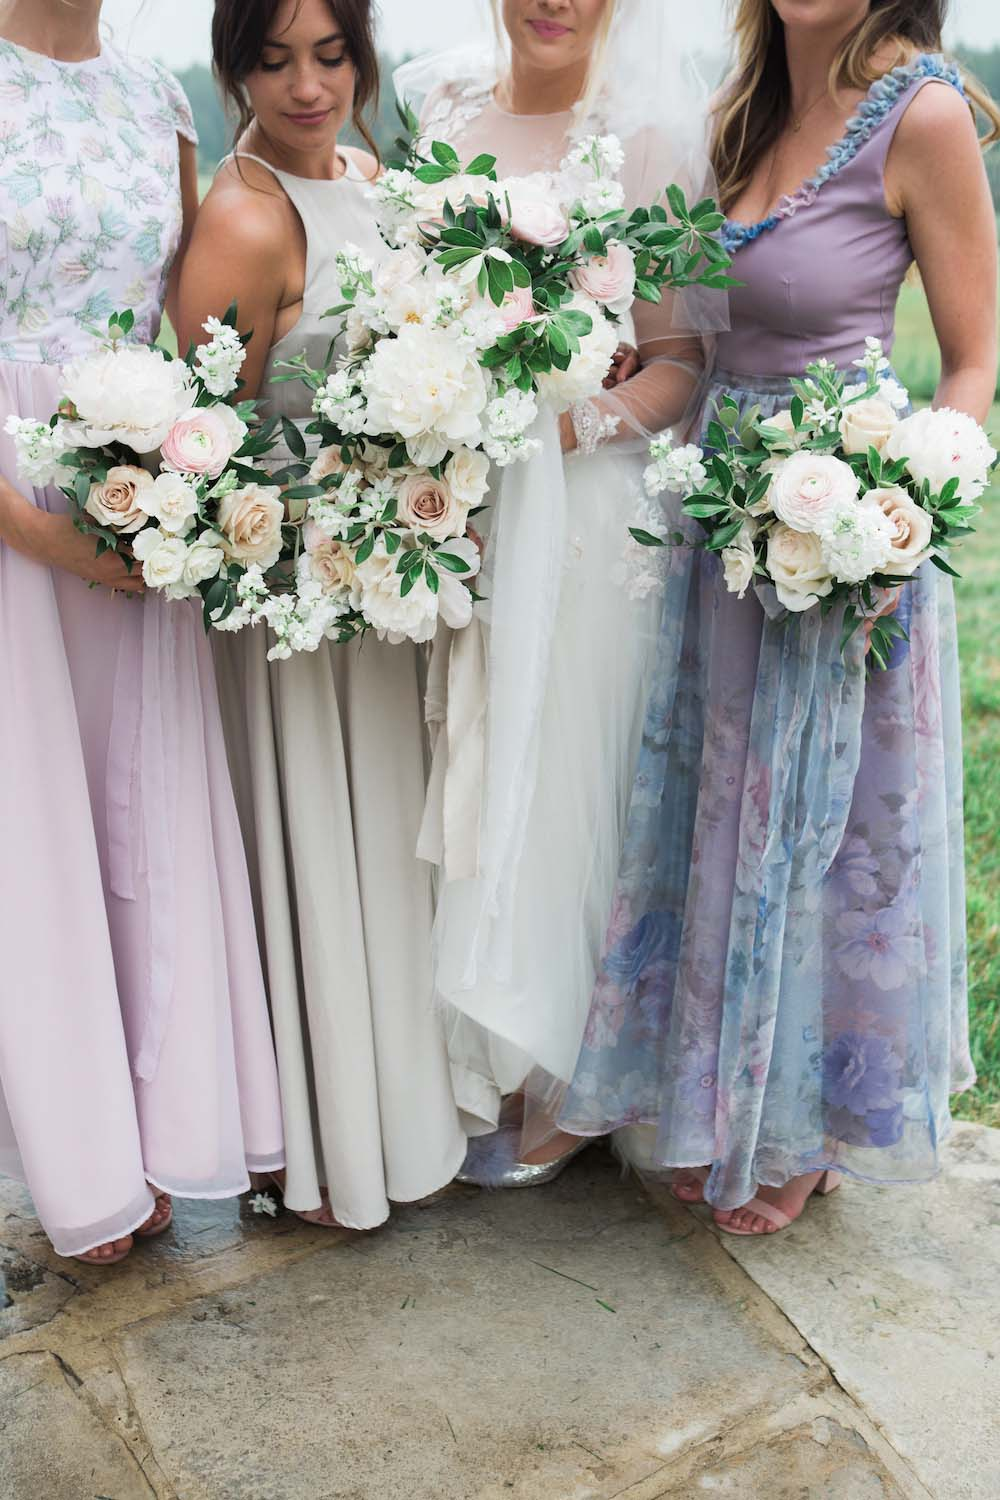 A Rustic Celebration at the Willibald Farm Distillery in Ayr, Ontario - Bridal Party